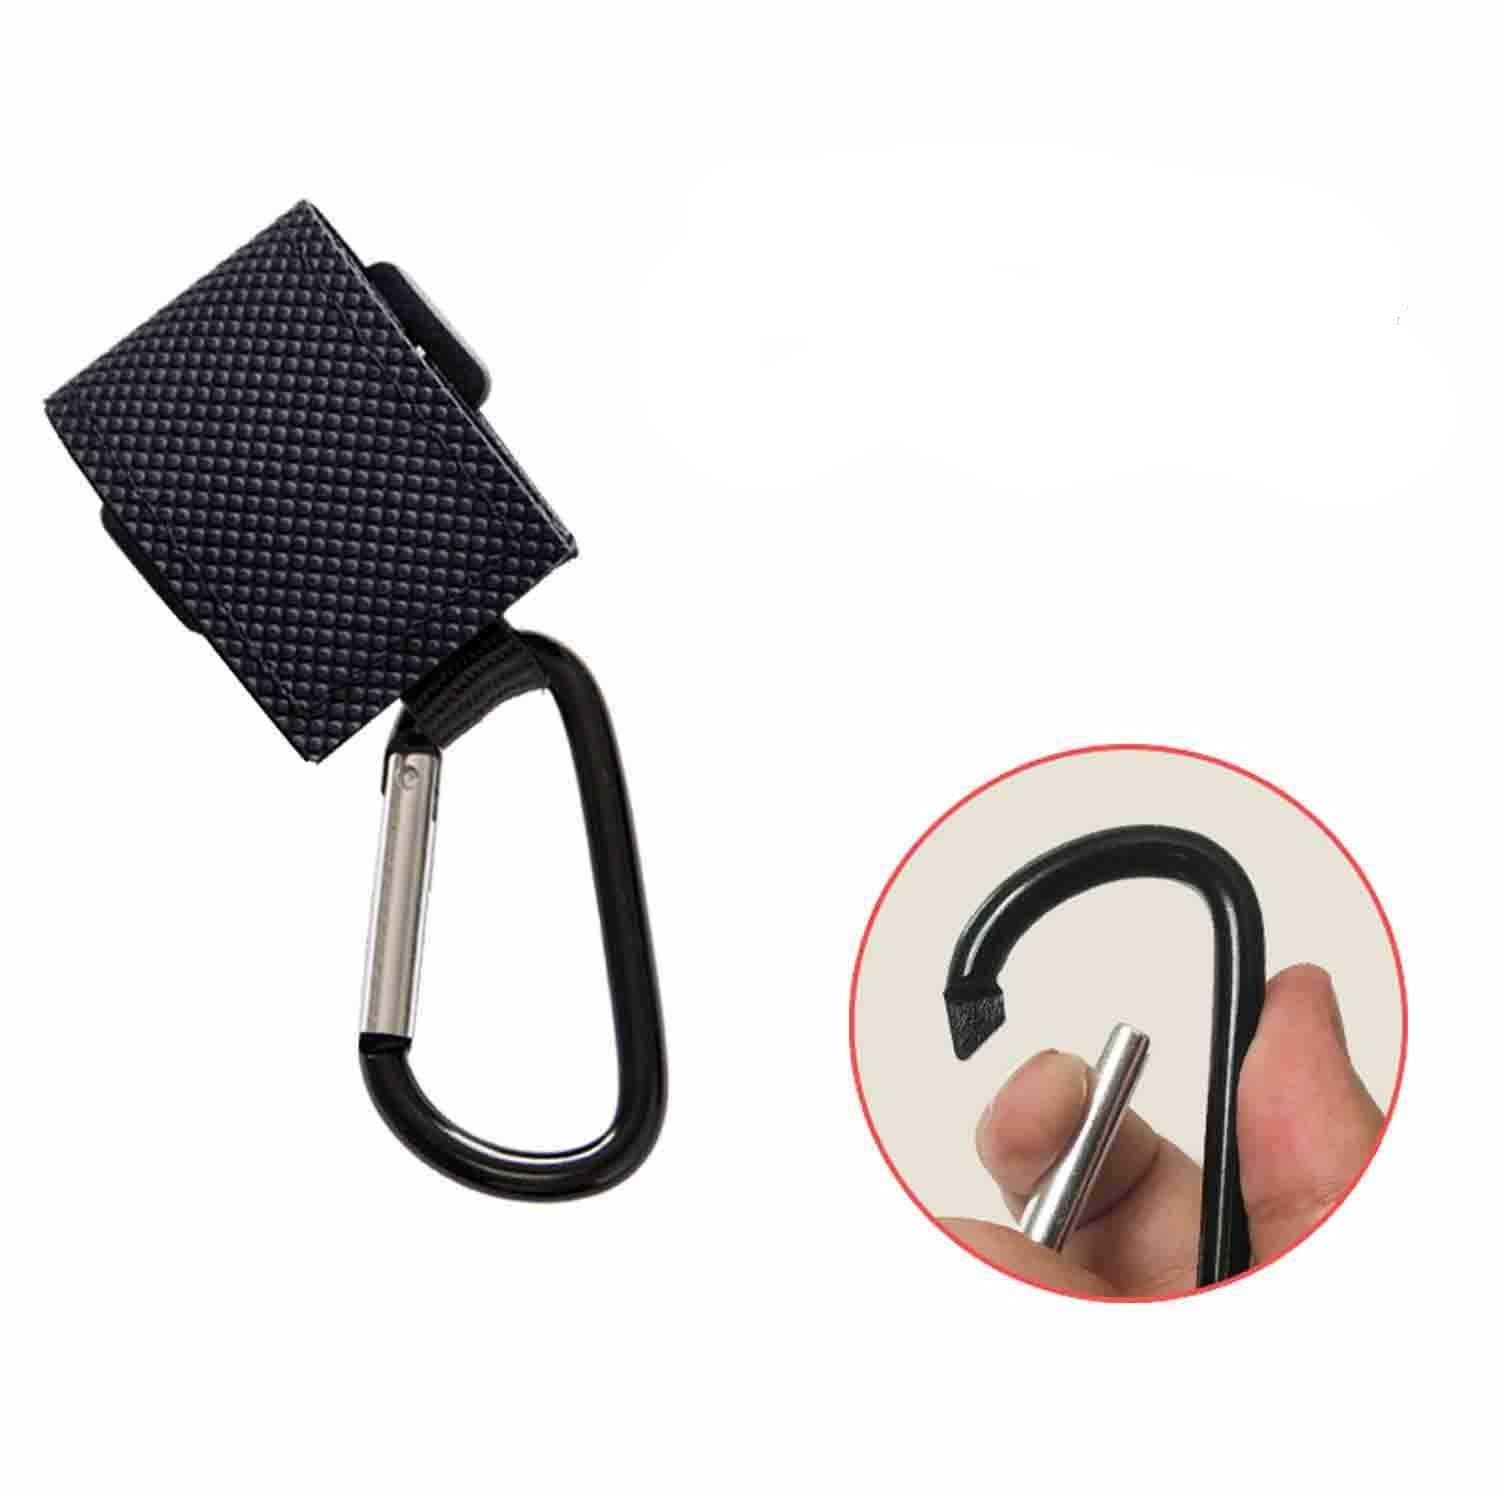 Playful Panda Universal Stroller Non-Slip Adjustable Multi-Purpose Hooks